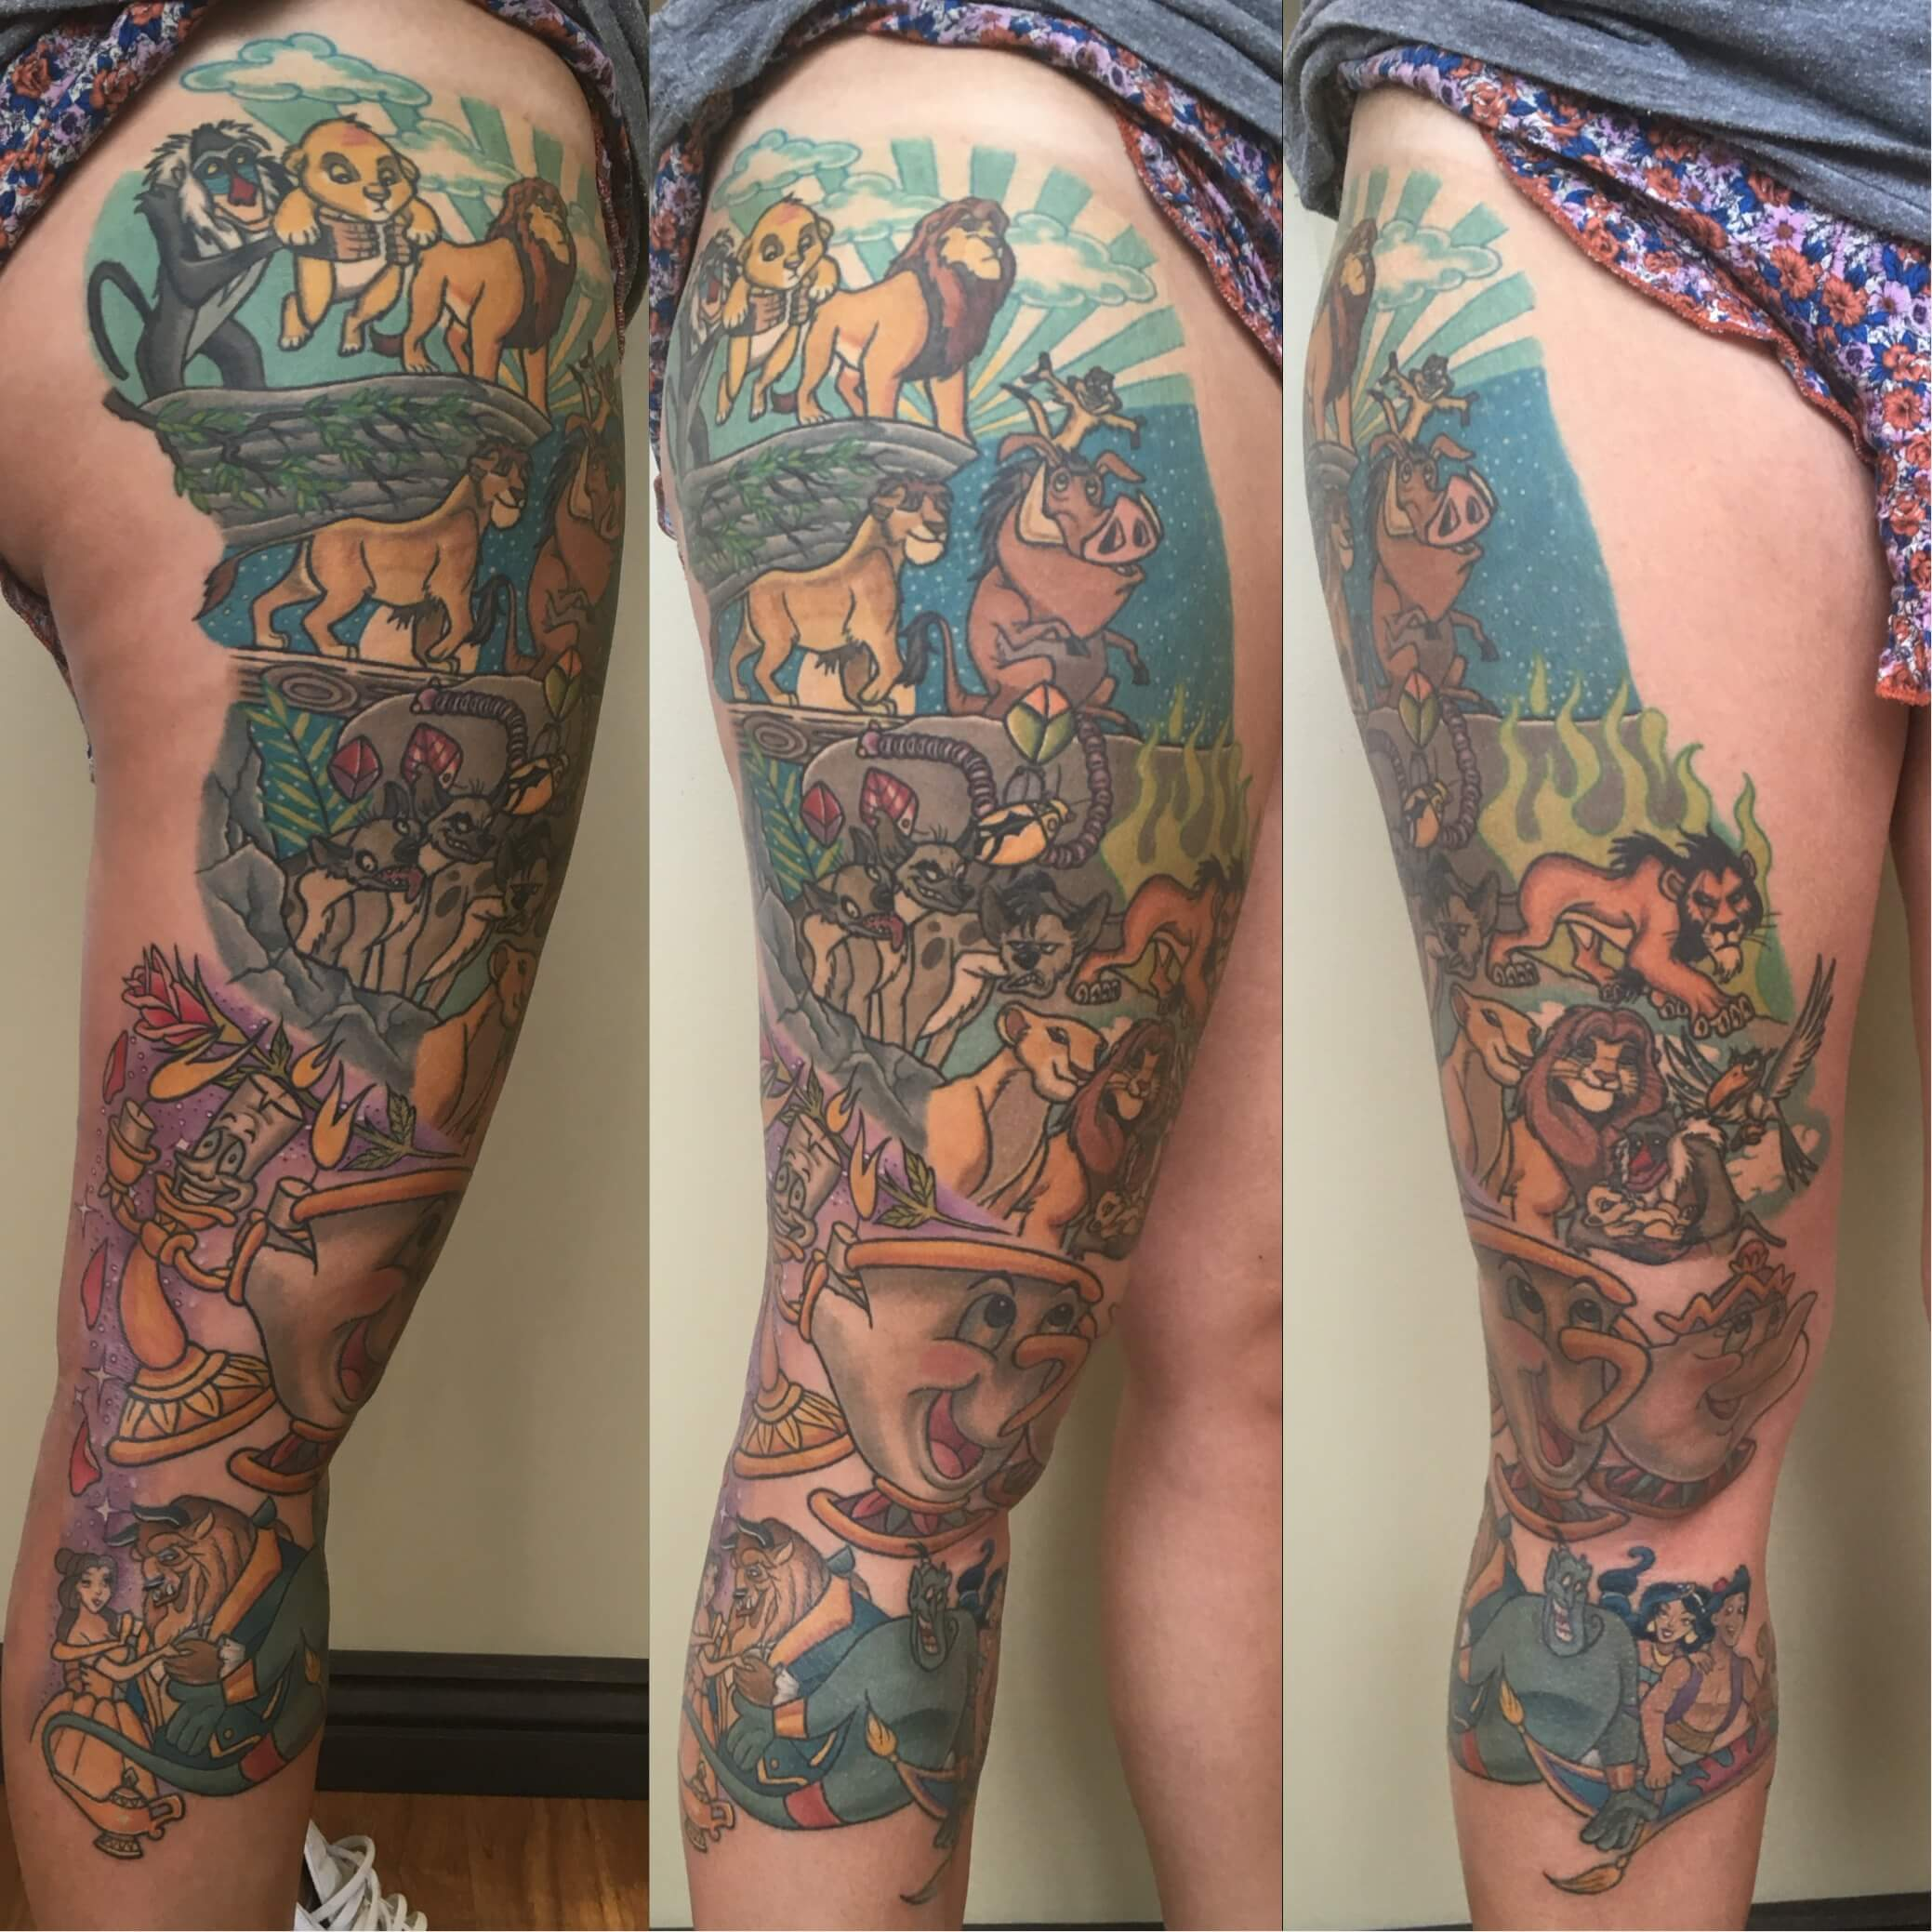 Lion King and Beauty and the Beast full leg